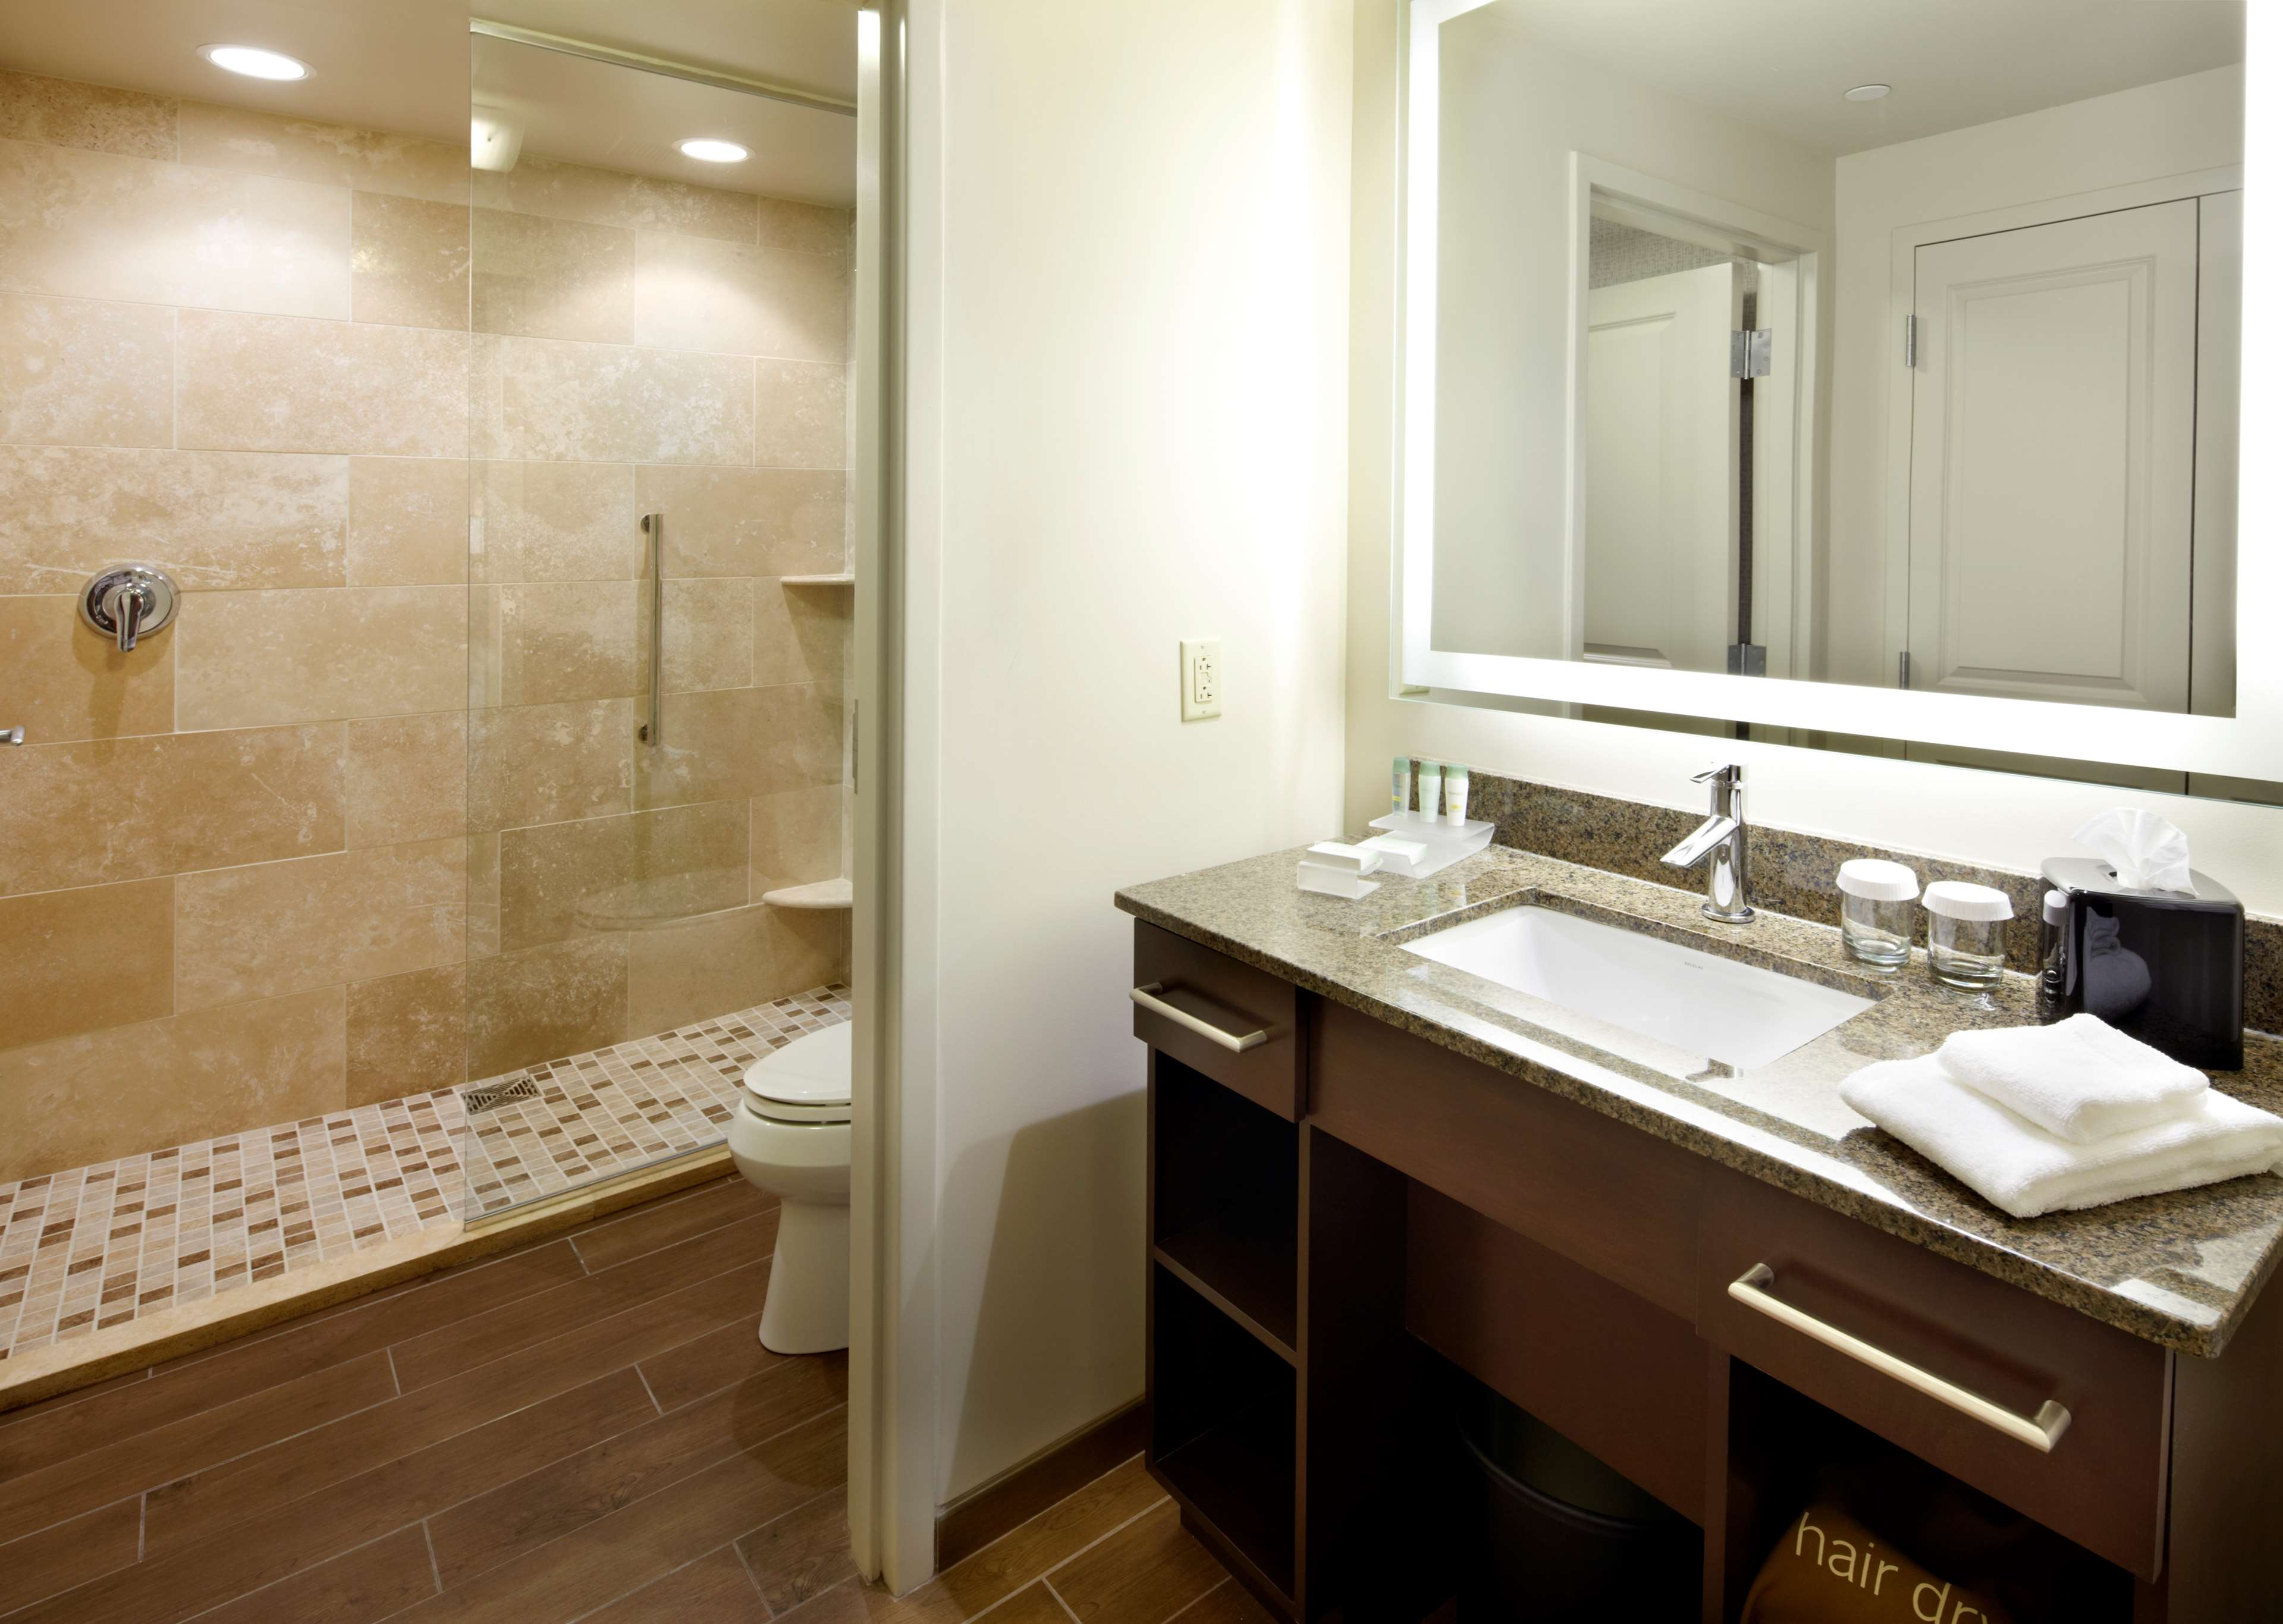 Homewood Suites by Hilton Pittsburgh Airport Robinson Mall Area PA image 19